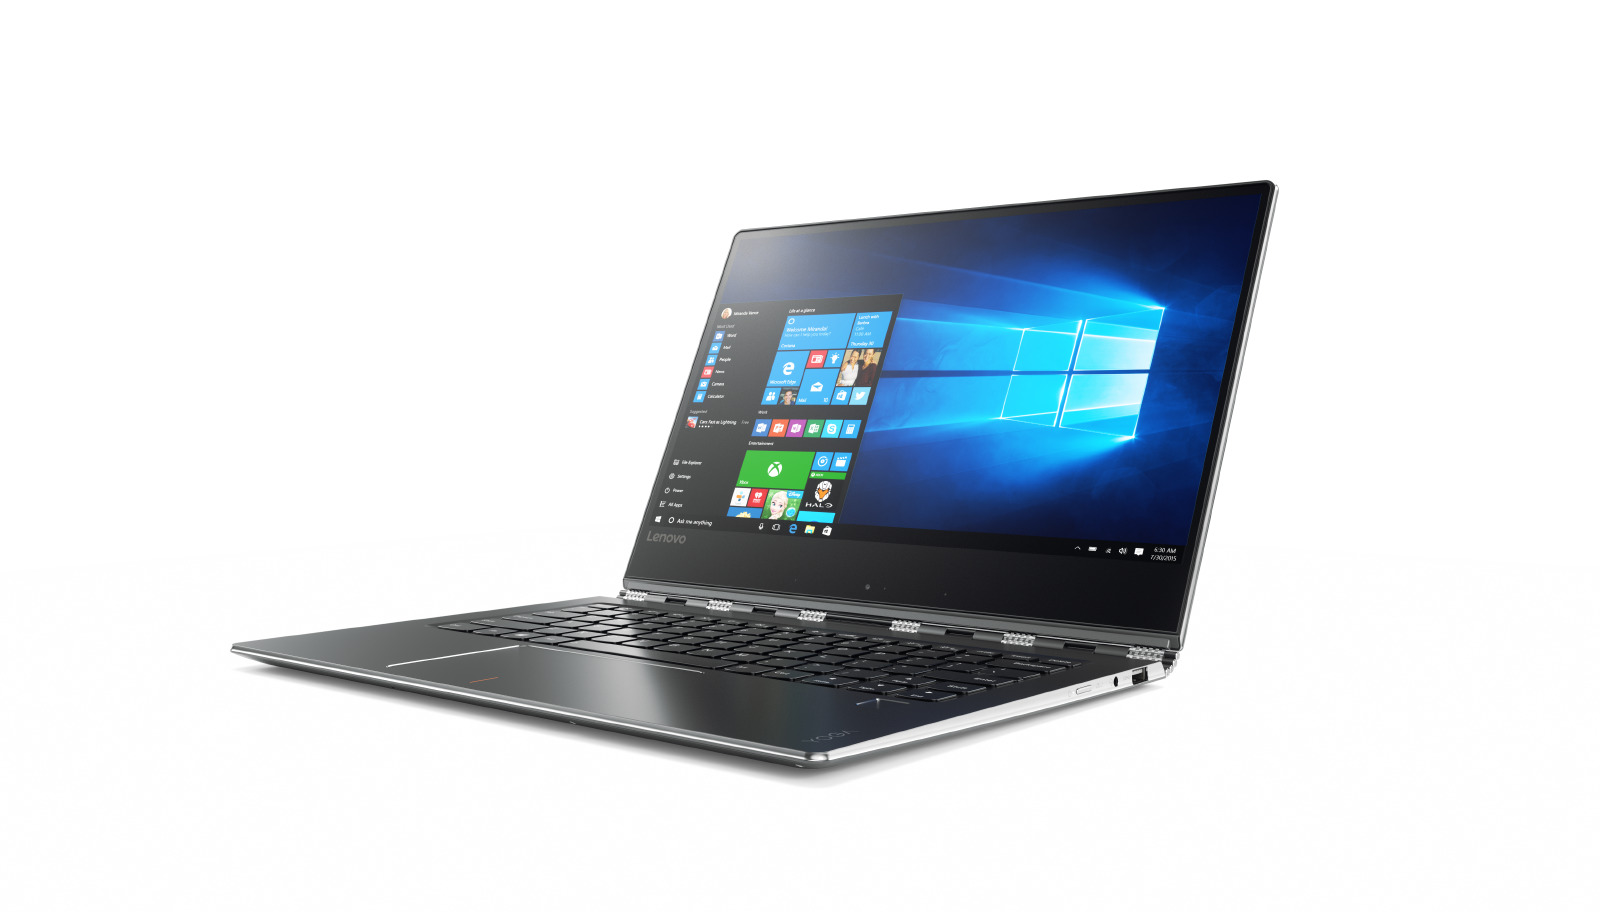 Lenovo IdeaPad YOGA 910-13 IKB 13.9 FHD IPS M Touch/i7-7500U/8G/512SSD/INT/W10P/Backlit/720p/Metal